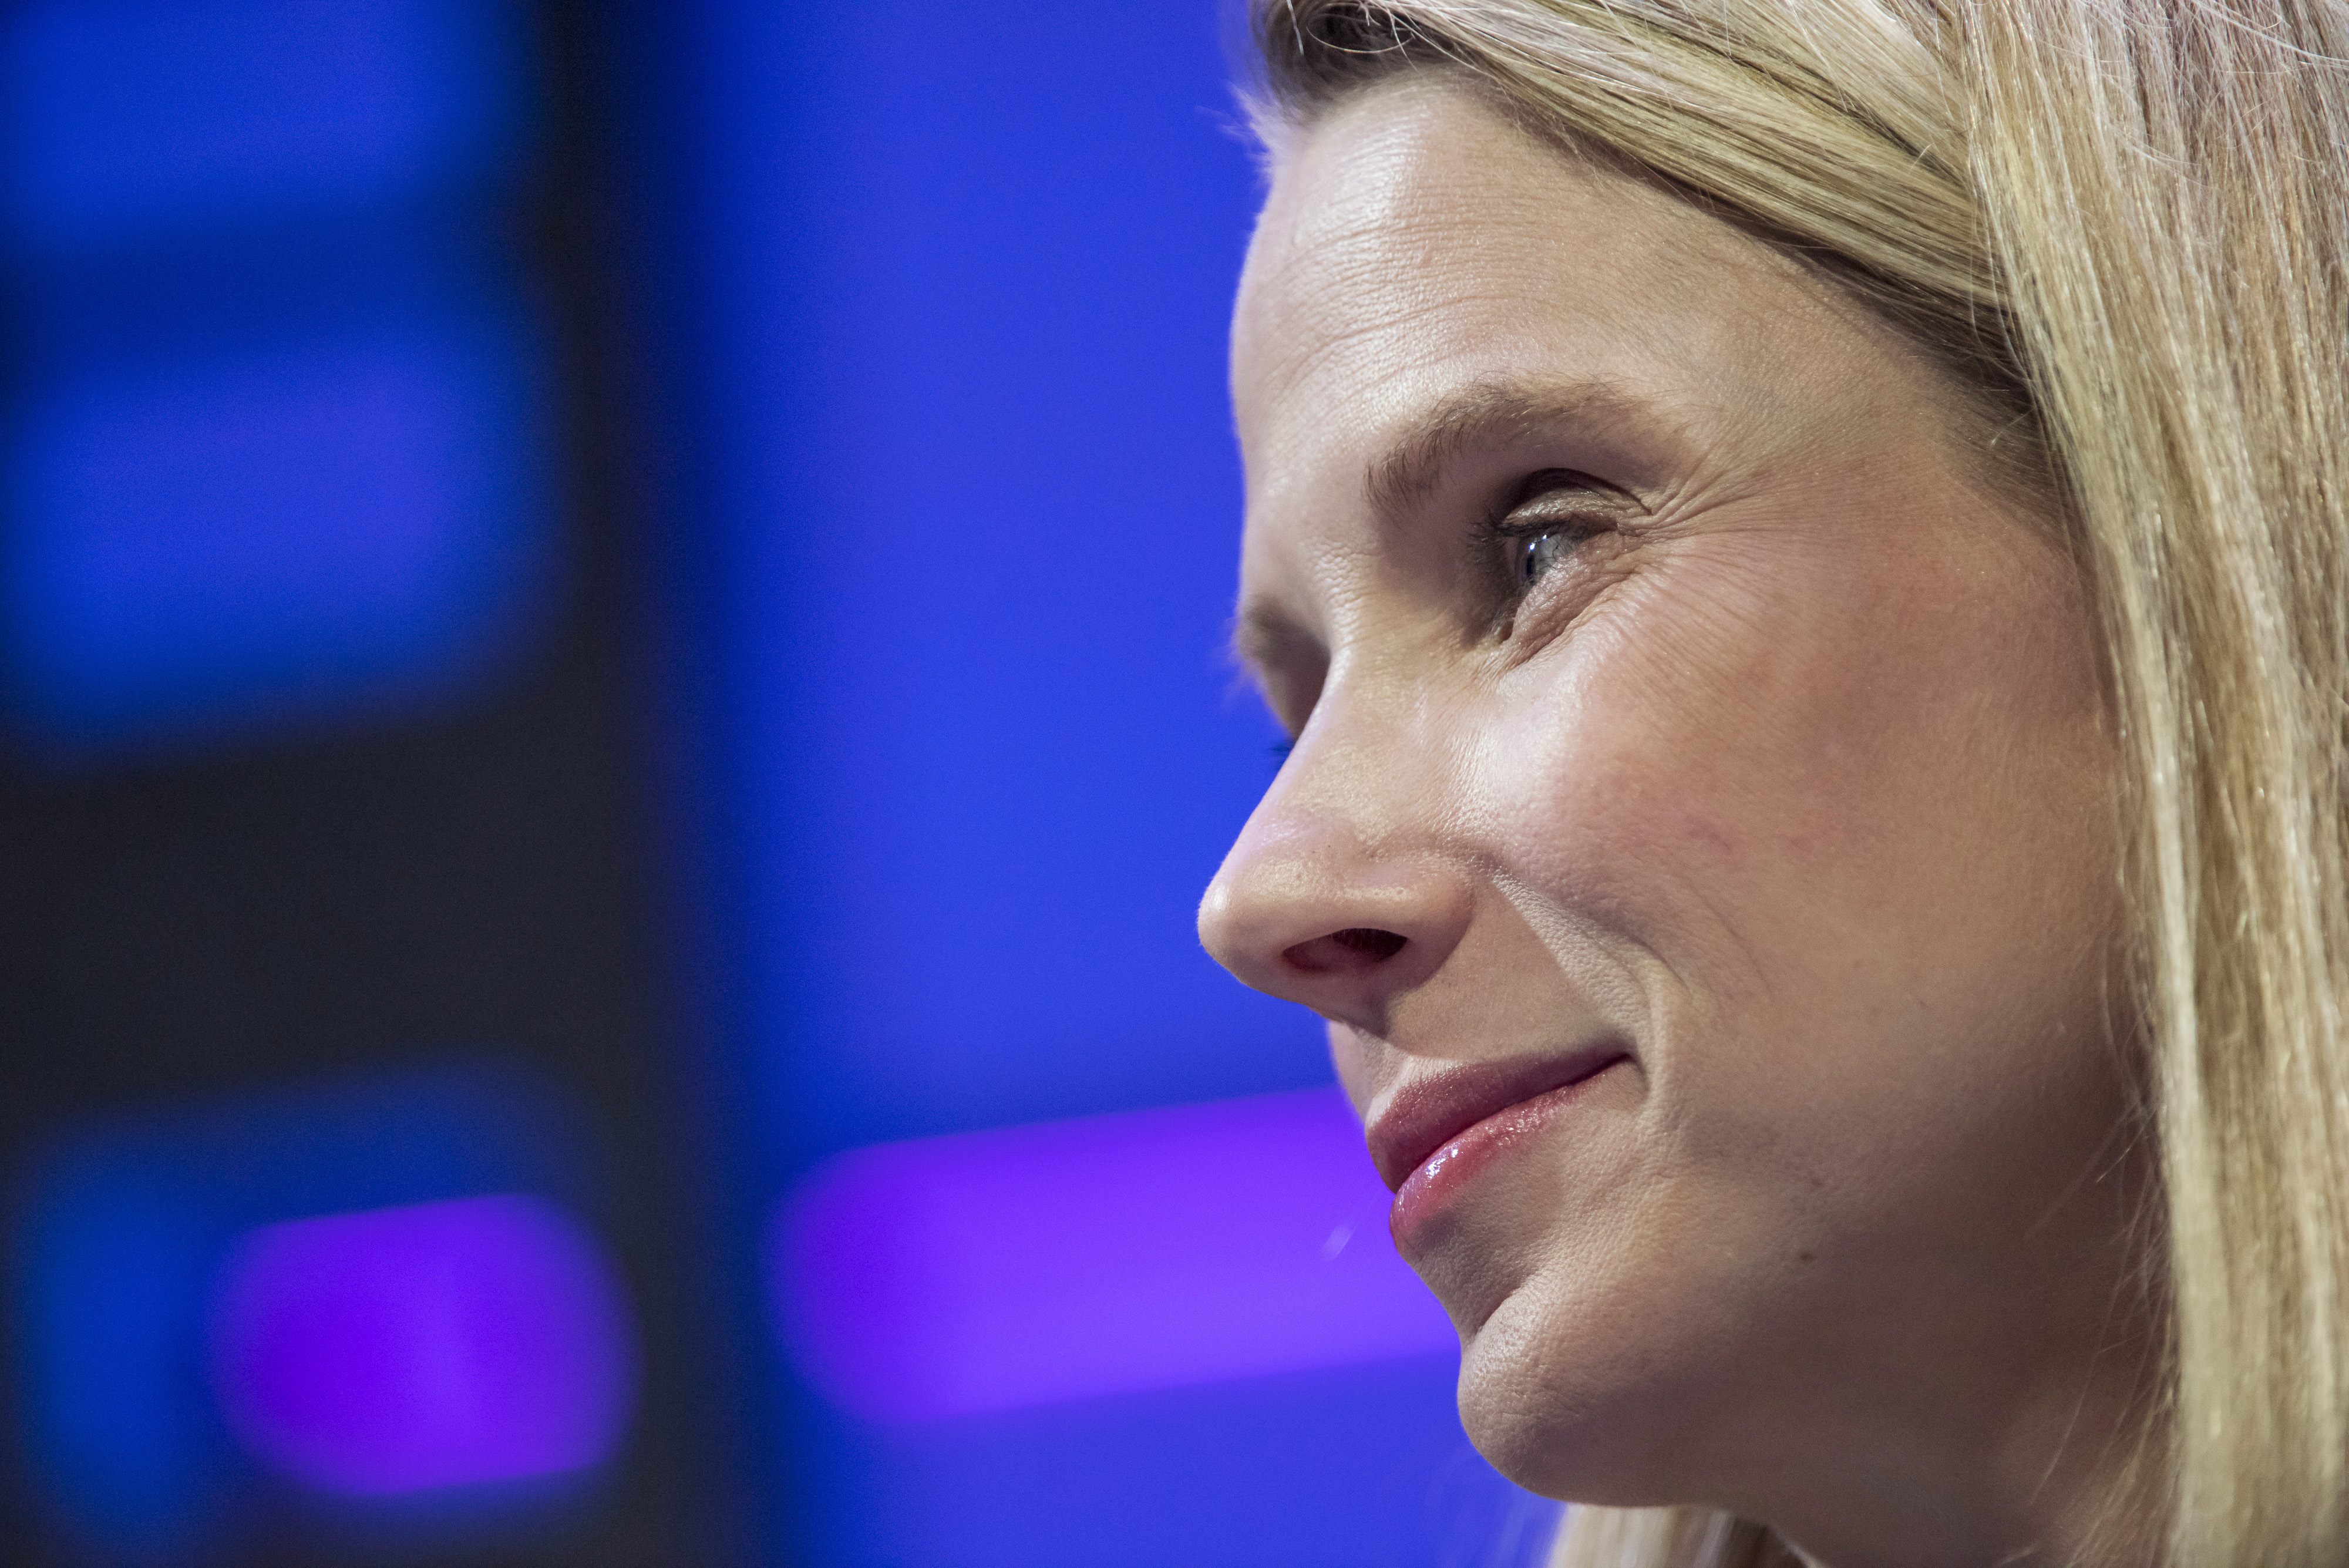 Marissa Mayer listens during the 2015 Fortune Global Forum in San Francisco, CA on Nov. 3, 2015.